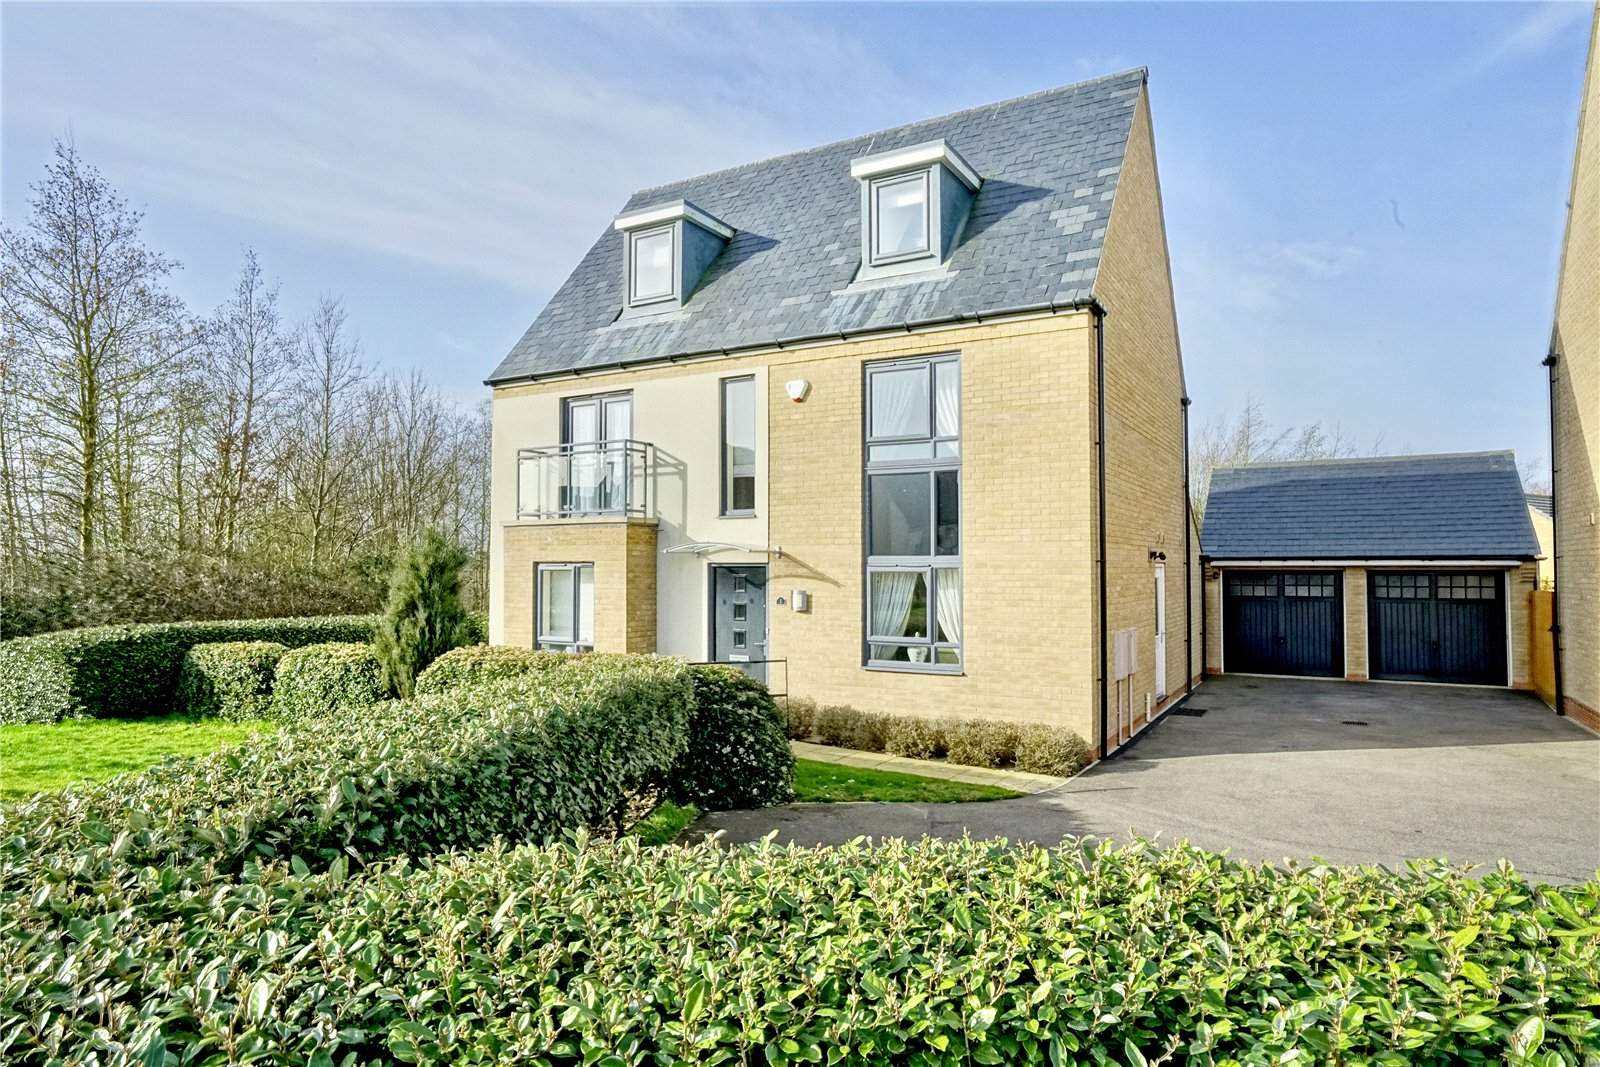 5 bed house for sale in Papworth Everard, CB23 3AQ - Property Image 1